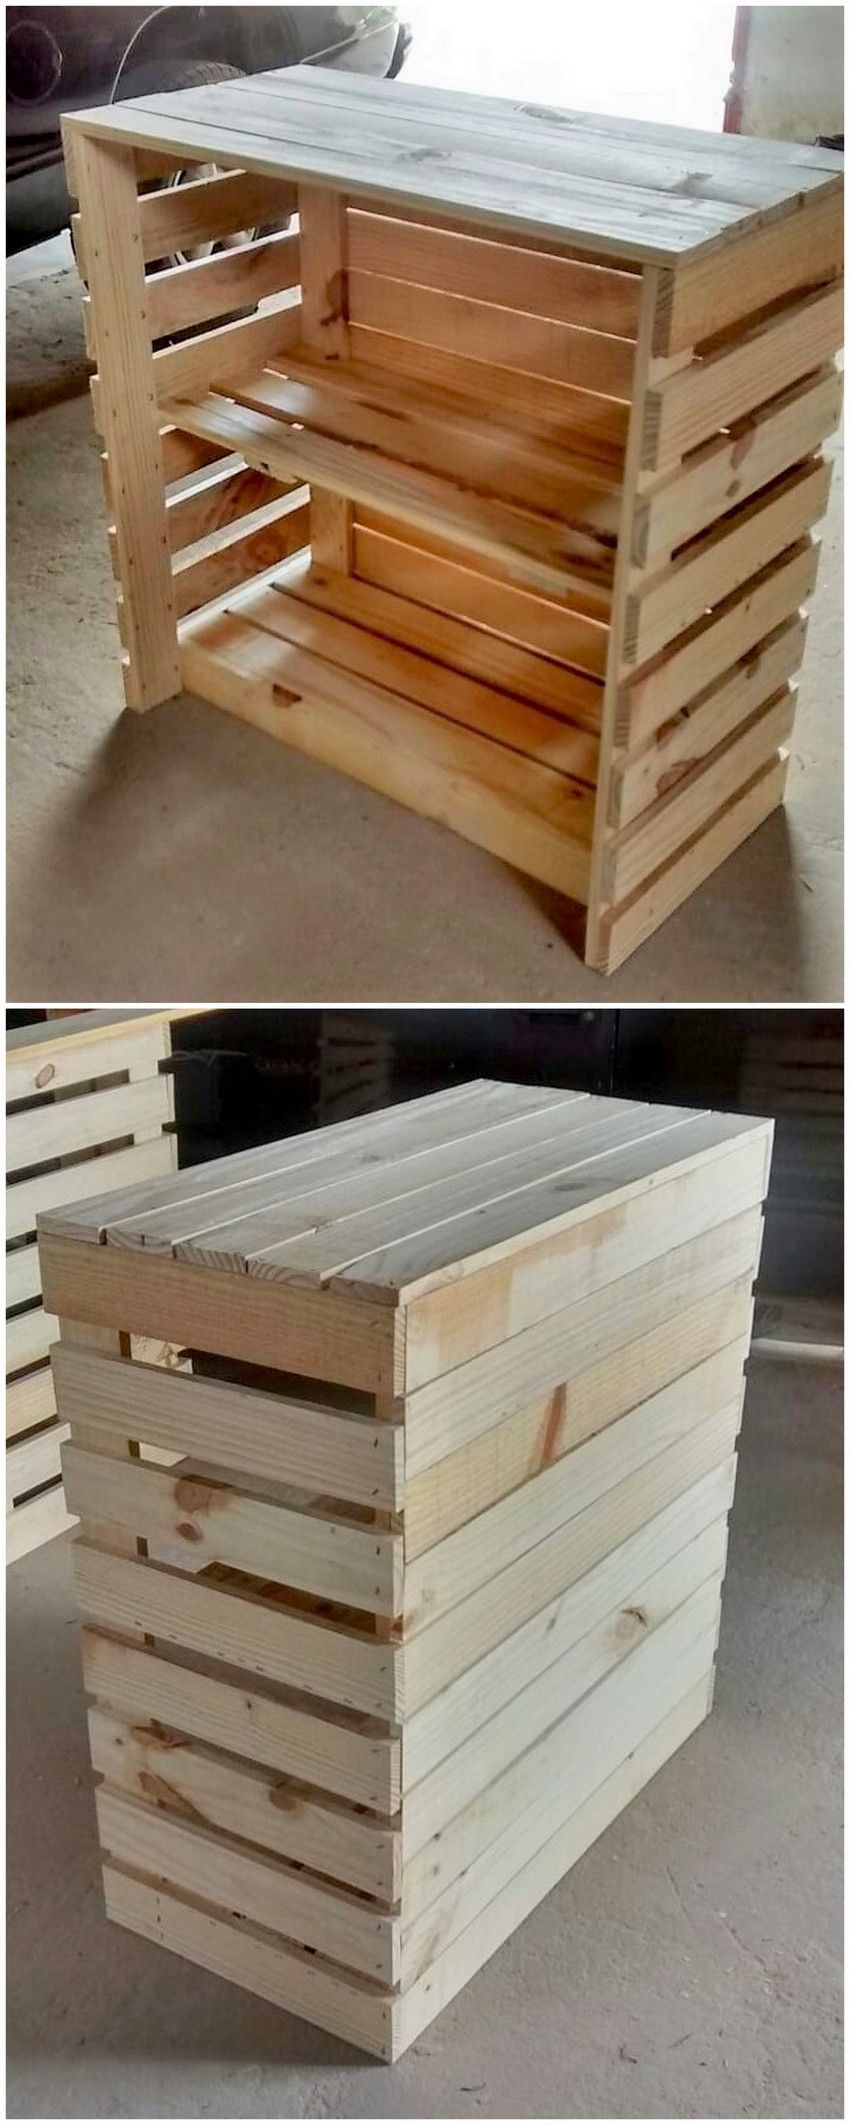 Diy Projects With Pallets Diy Pallet Projects Pallet Projects